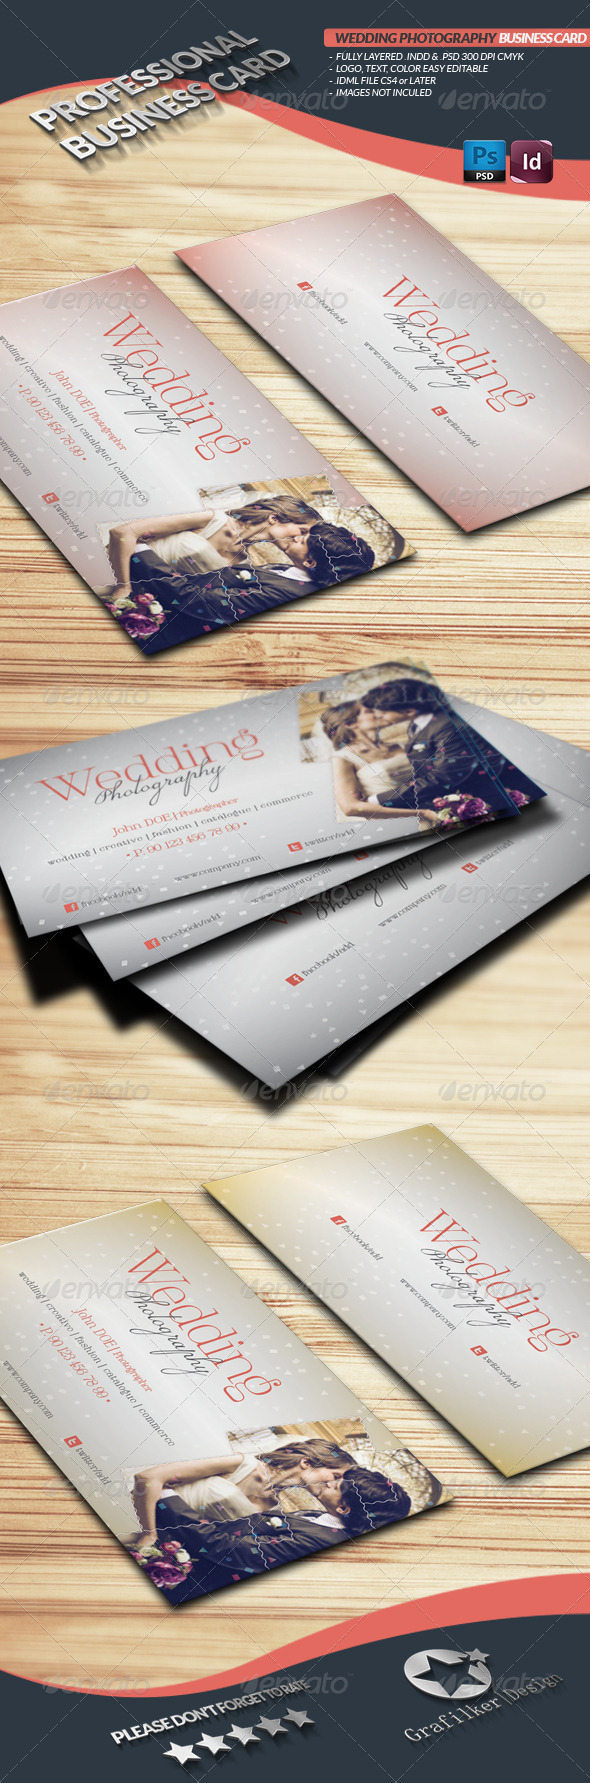 GraphicRiver Wedding Photography Business Card Template 4310294